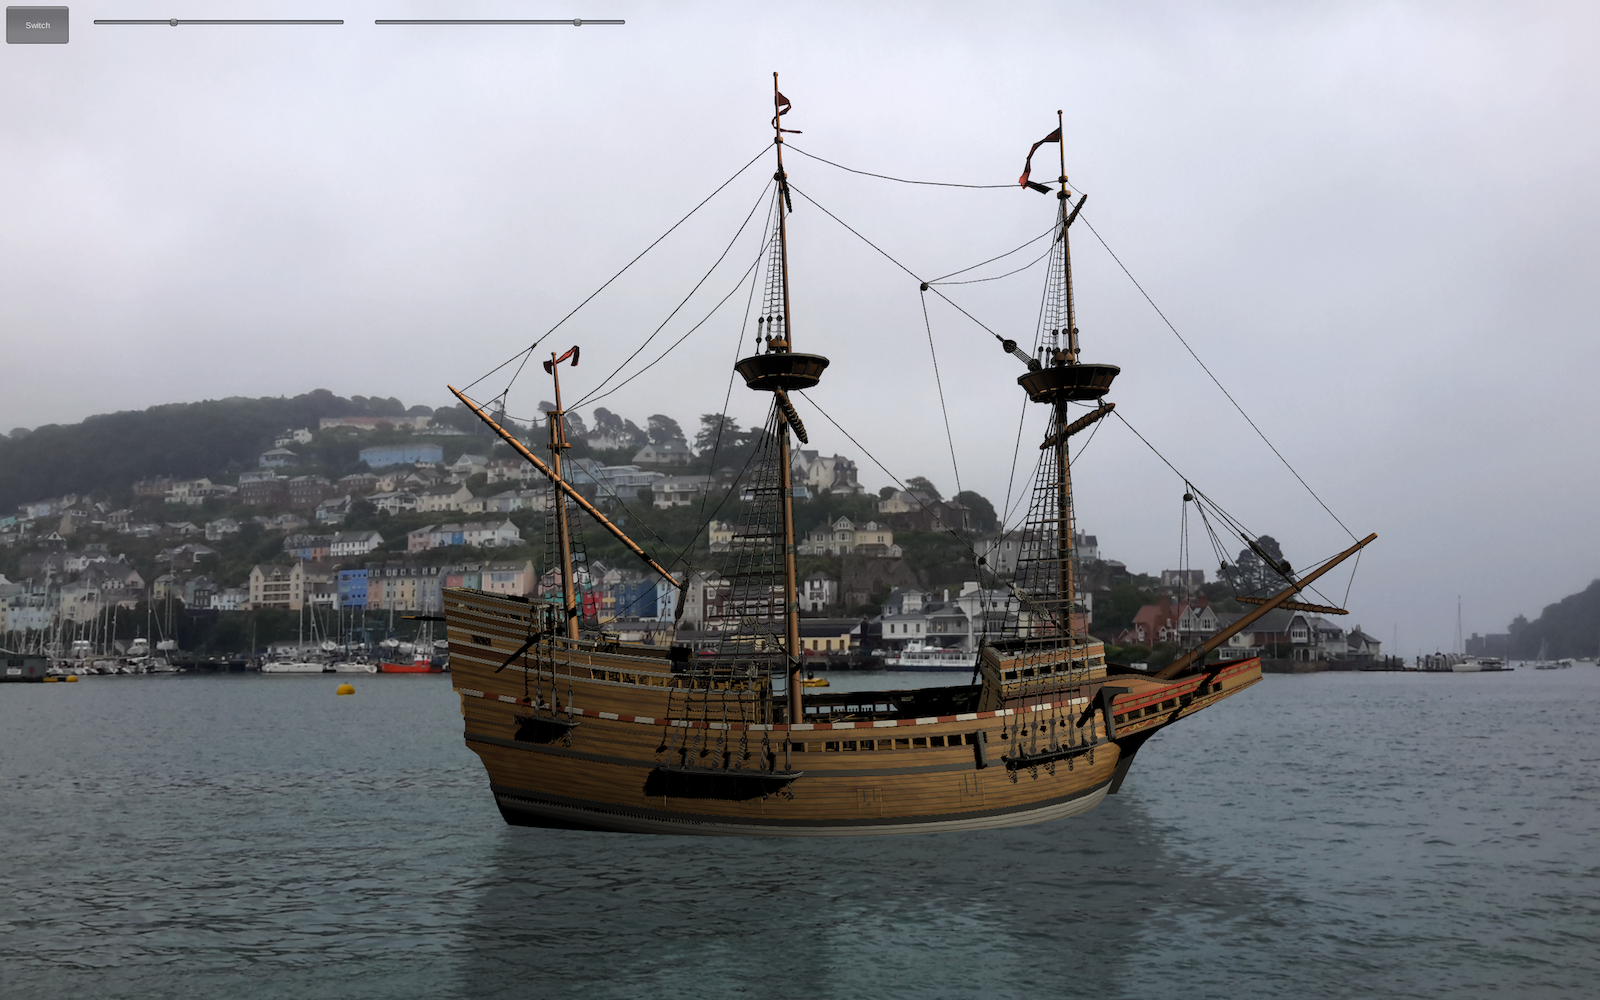 augmented reality mayflower ship dartmouth